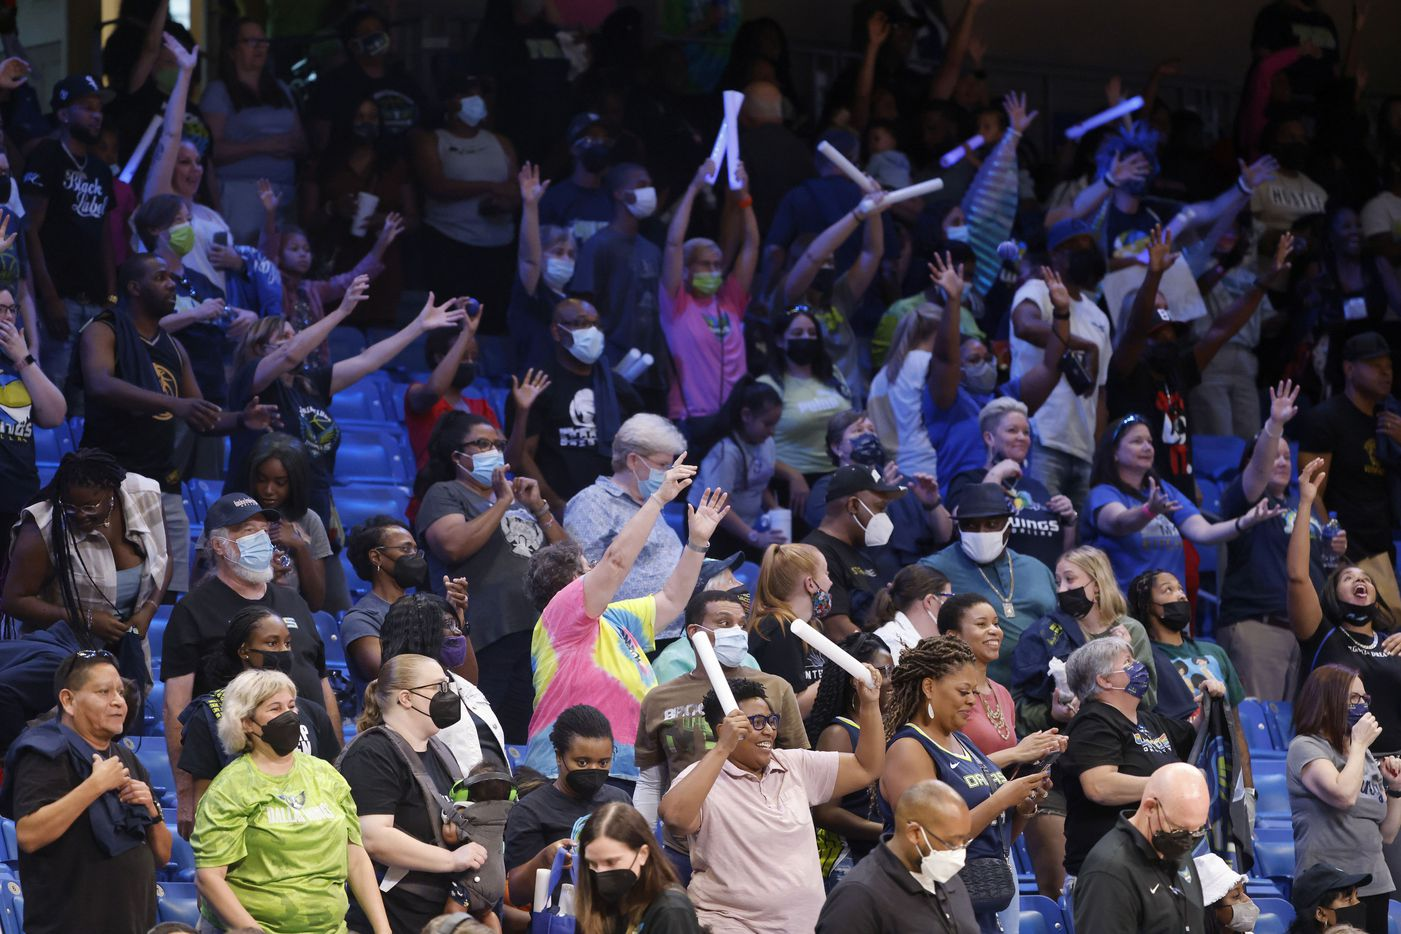 Fans celebrate as the Dallas Wings defeated the Los Angeles Sparks 87-84 during the second half of a WNBA basketball game in Arlington, Texas on Sunday, Sept. 19, 2021. (Michael Ainsworth/Special Contributor)